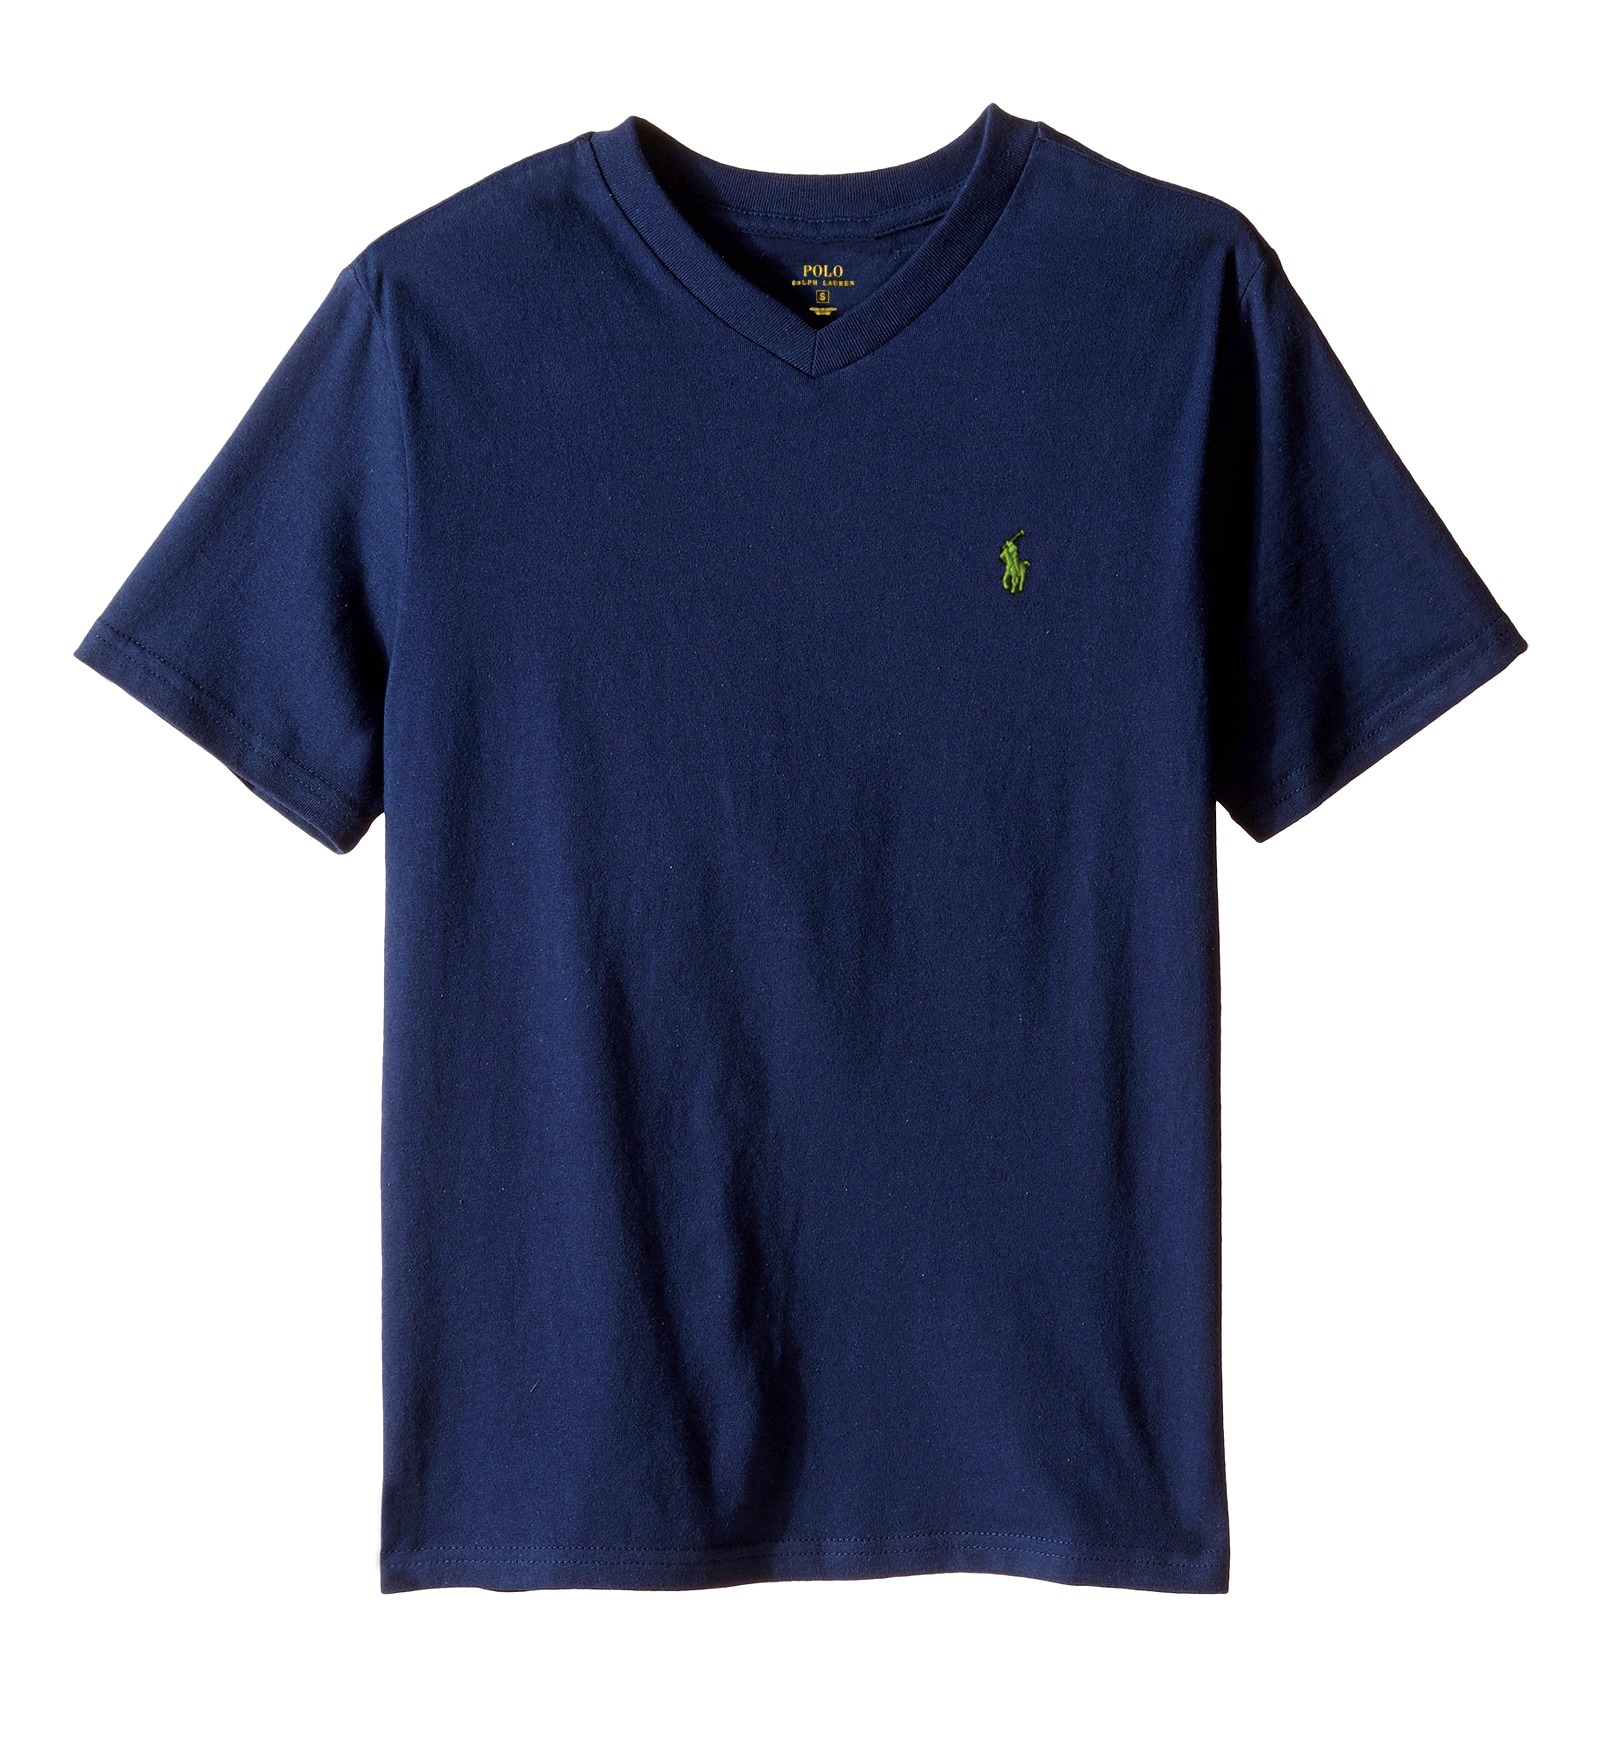 polo ralph lauren new mens classic v neck cotton tee t shirt 45 ebay. Black Bedroom Furniture Sets. Home Design Ideas